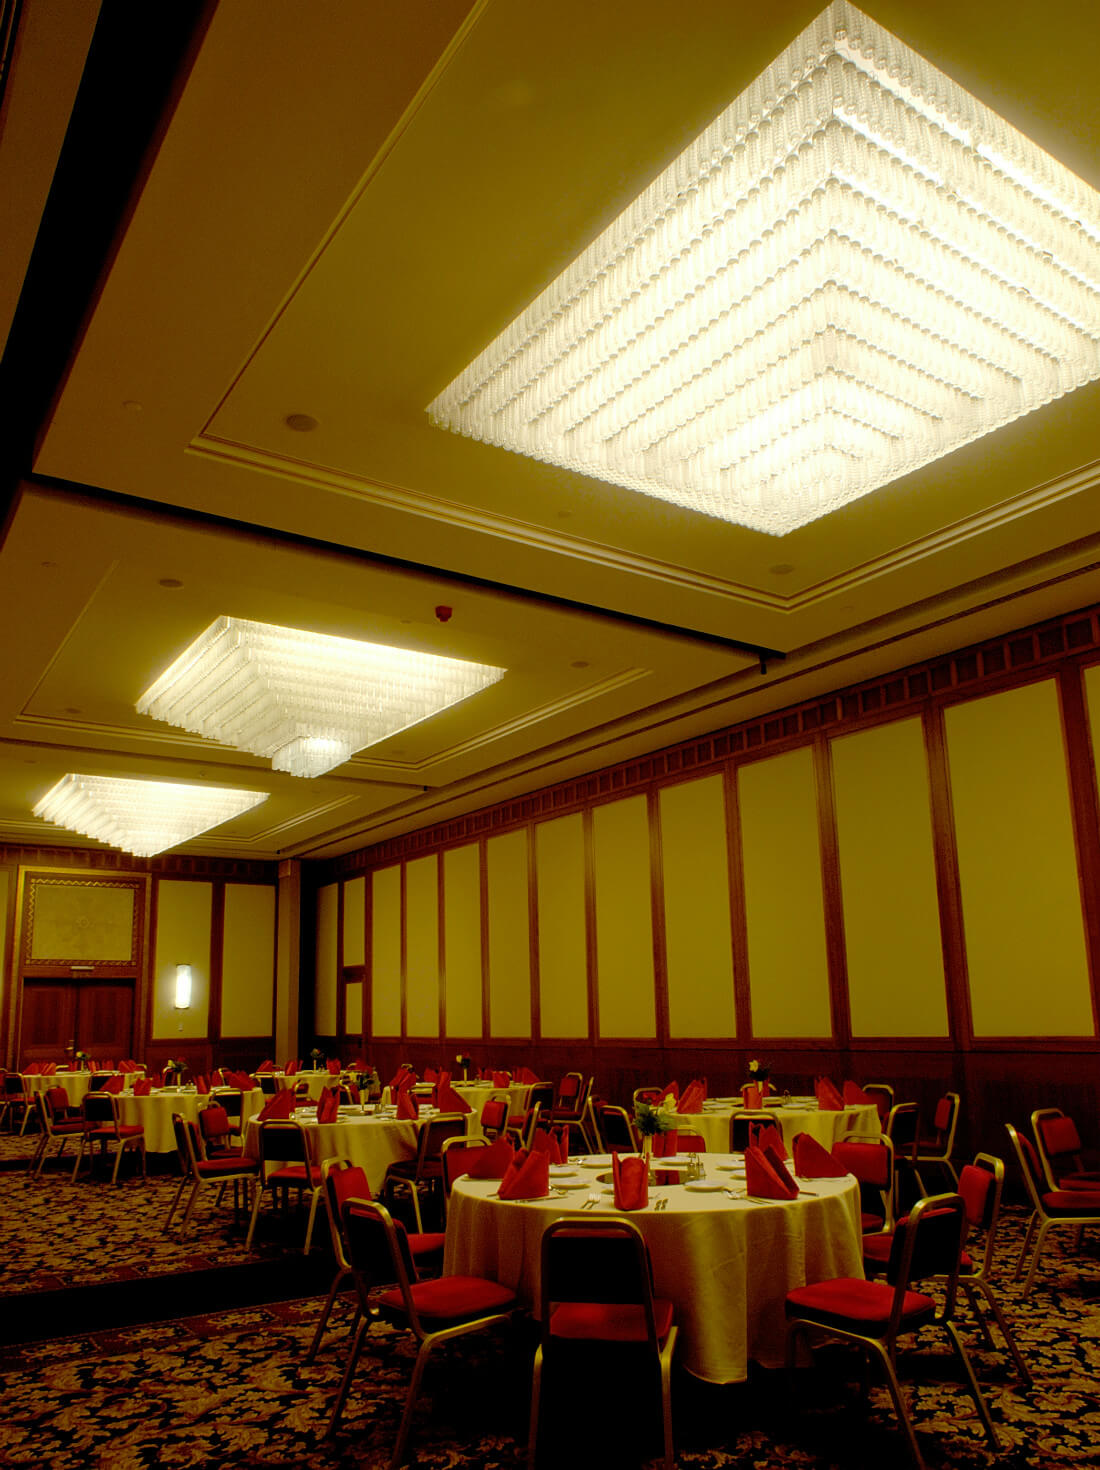 8100 decorative glass pendants lighted by end-light fibre optics in Hotel Hilton